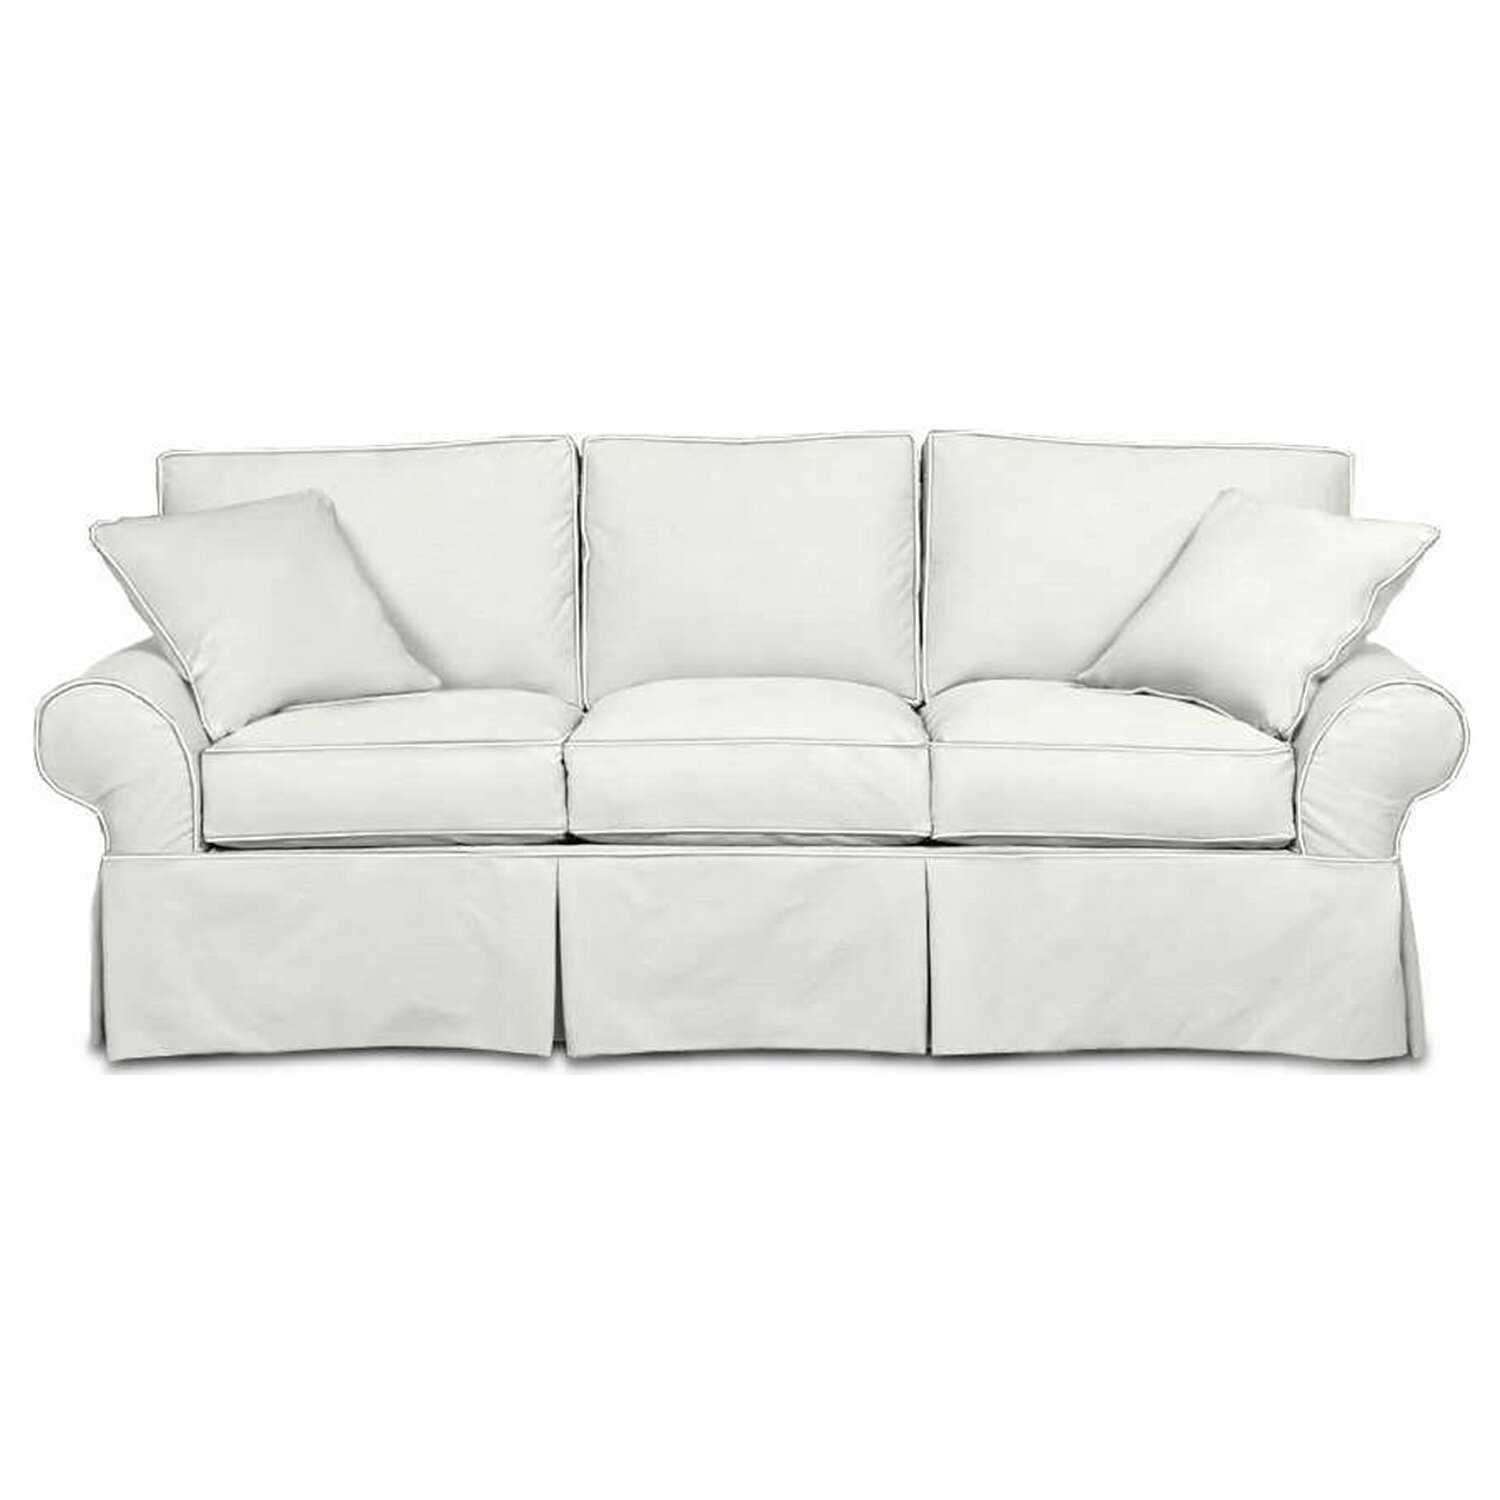 Wayfair Custom Upholstery™ Casey Sleeper Sofa U0026 Reviews | Wayfair